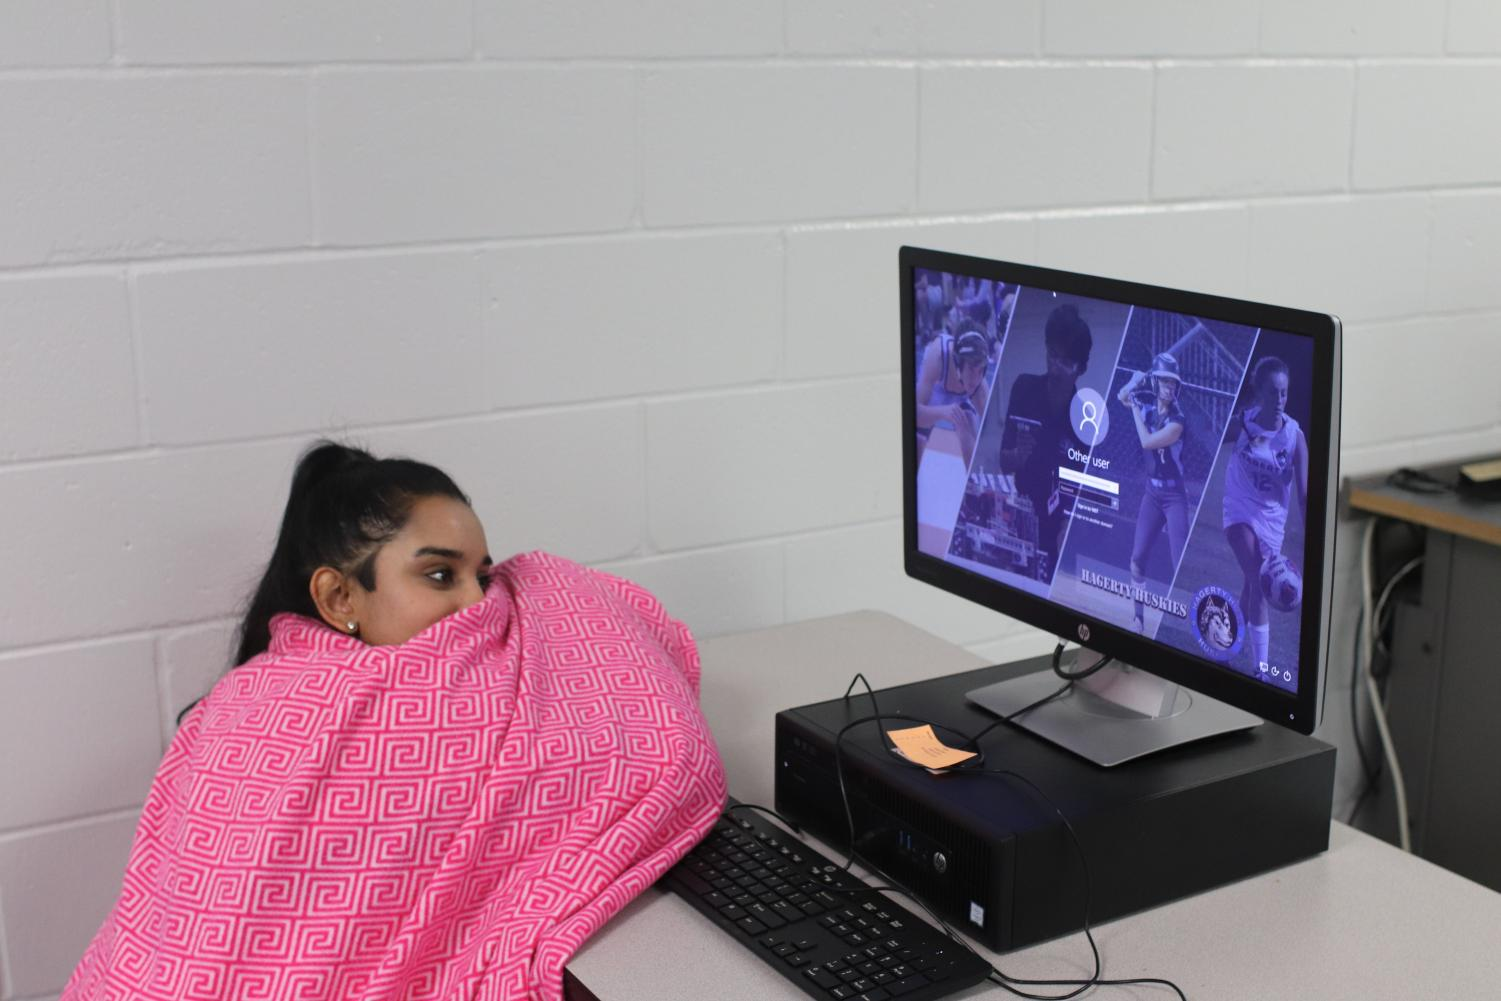 Senior Ashley Sharma learns in her sixth period. The class was cold and frigid so she had to get a blanket to be comfortable.